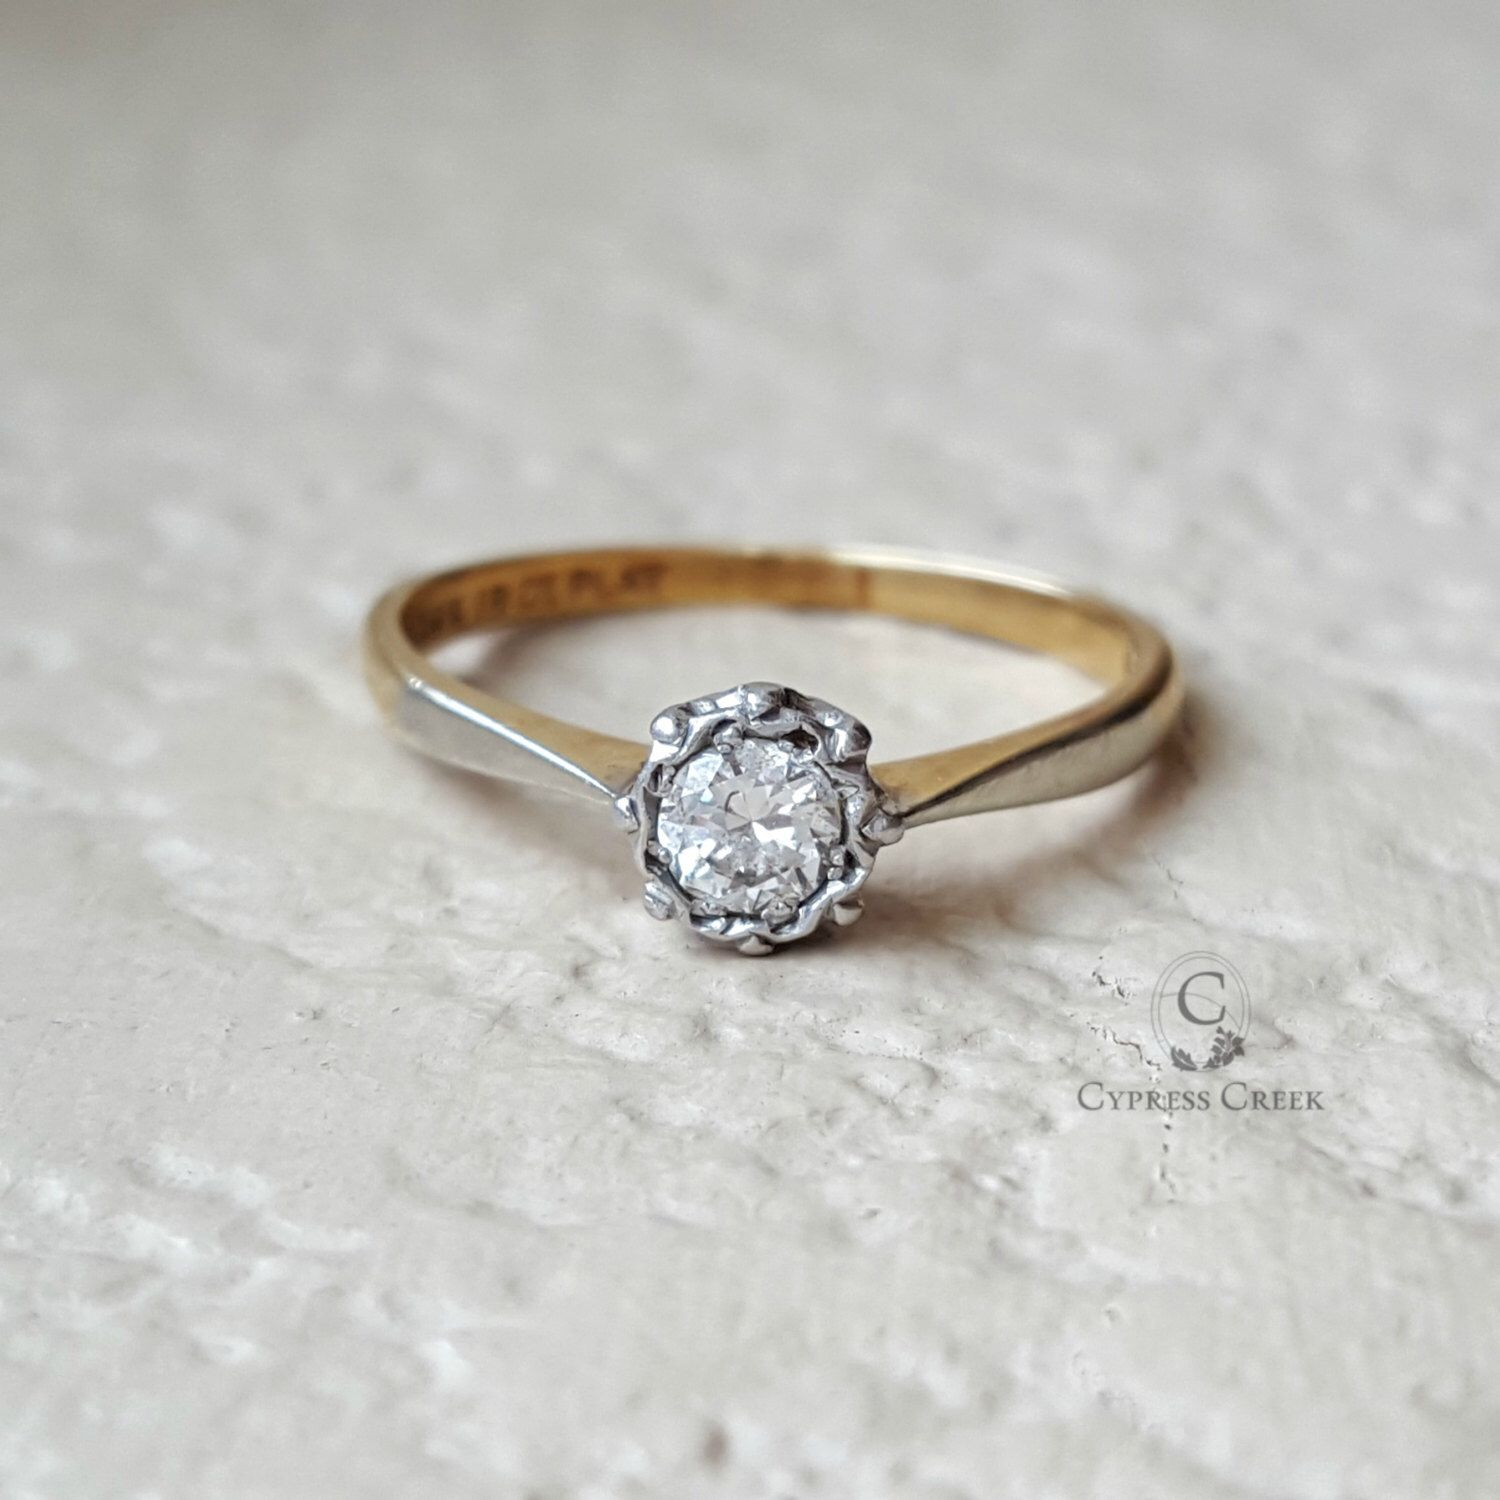 1910 Antique 35 Ct Diamond Engagement Wedding Ring With 18k Gold And Platinum Size 7